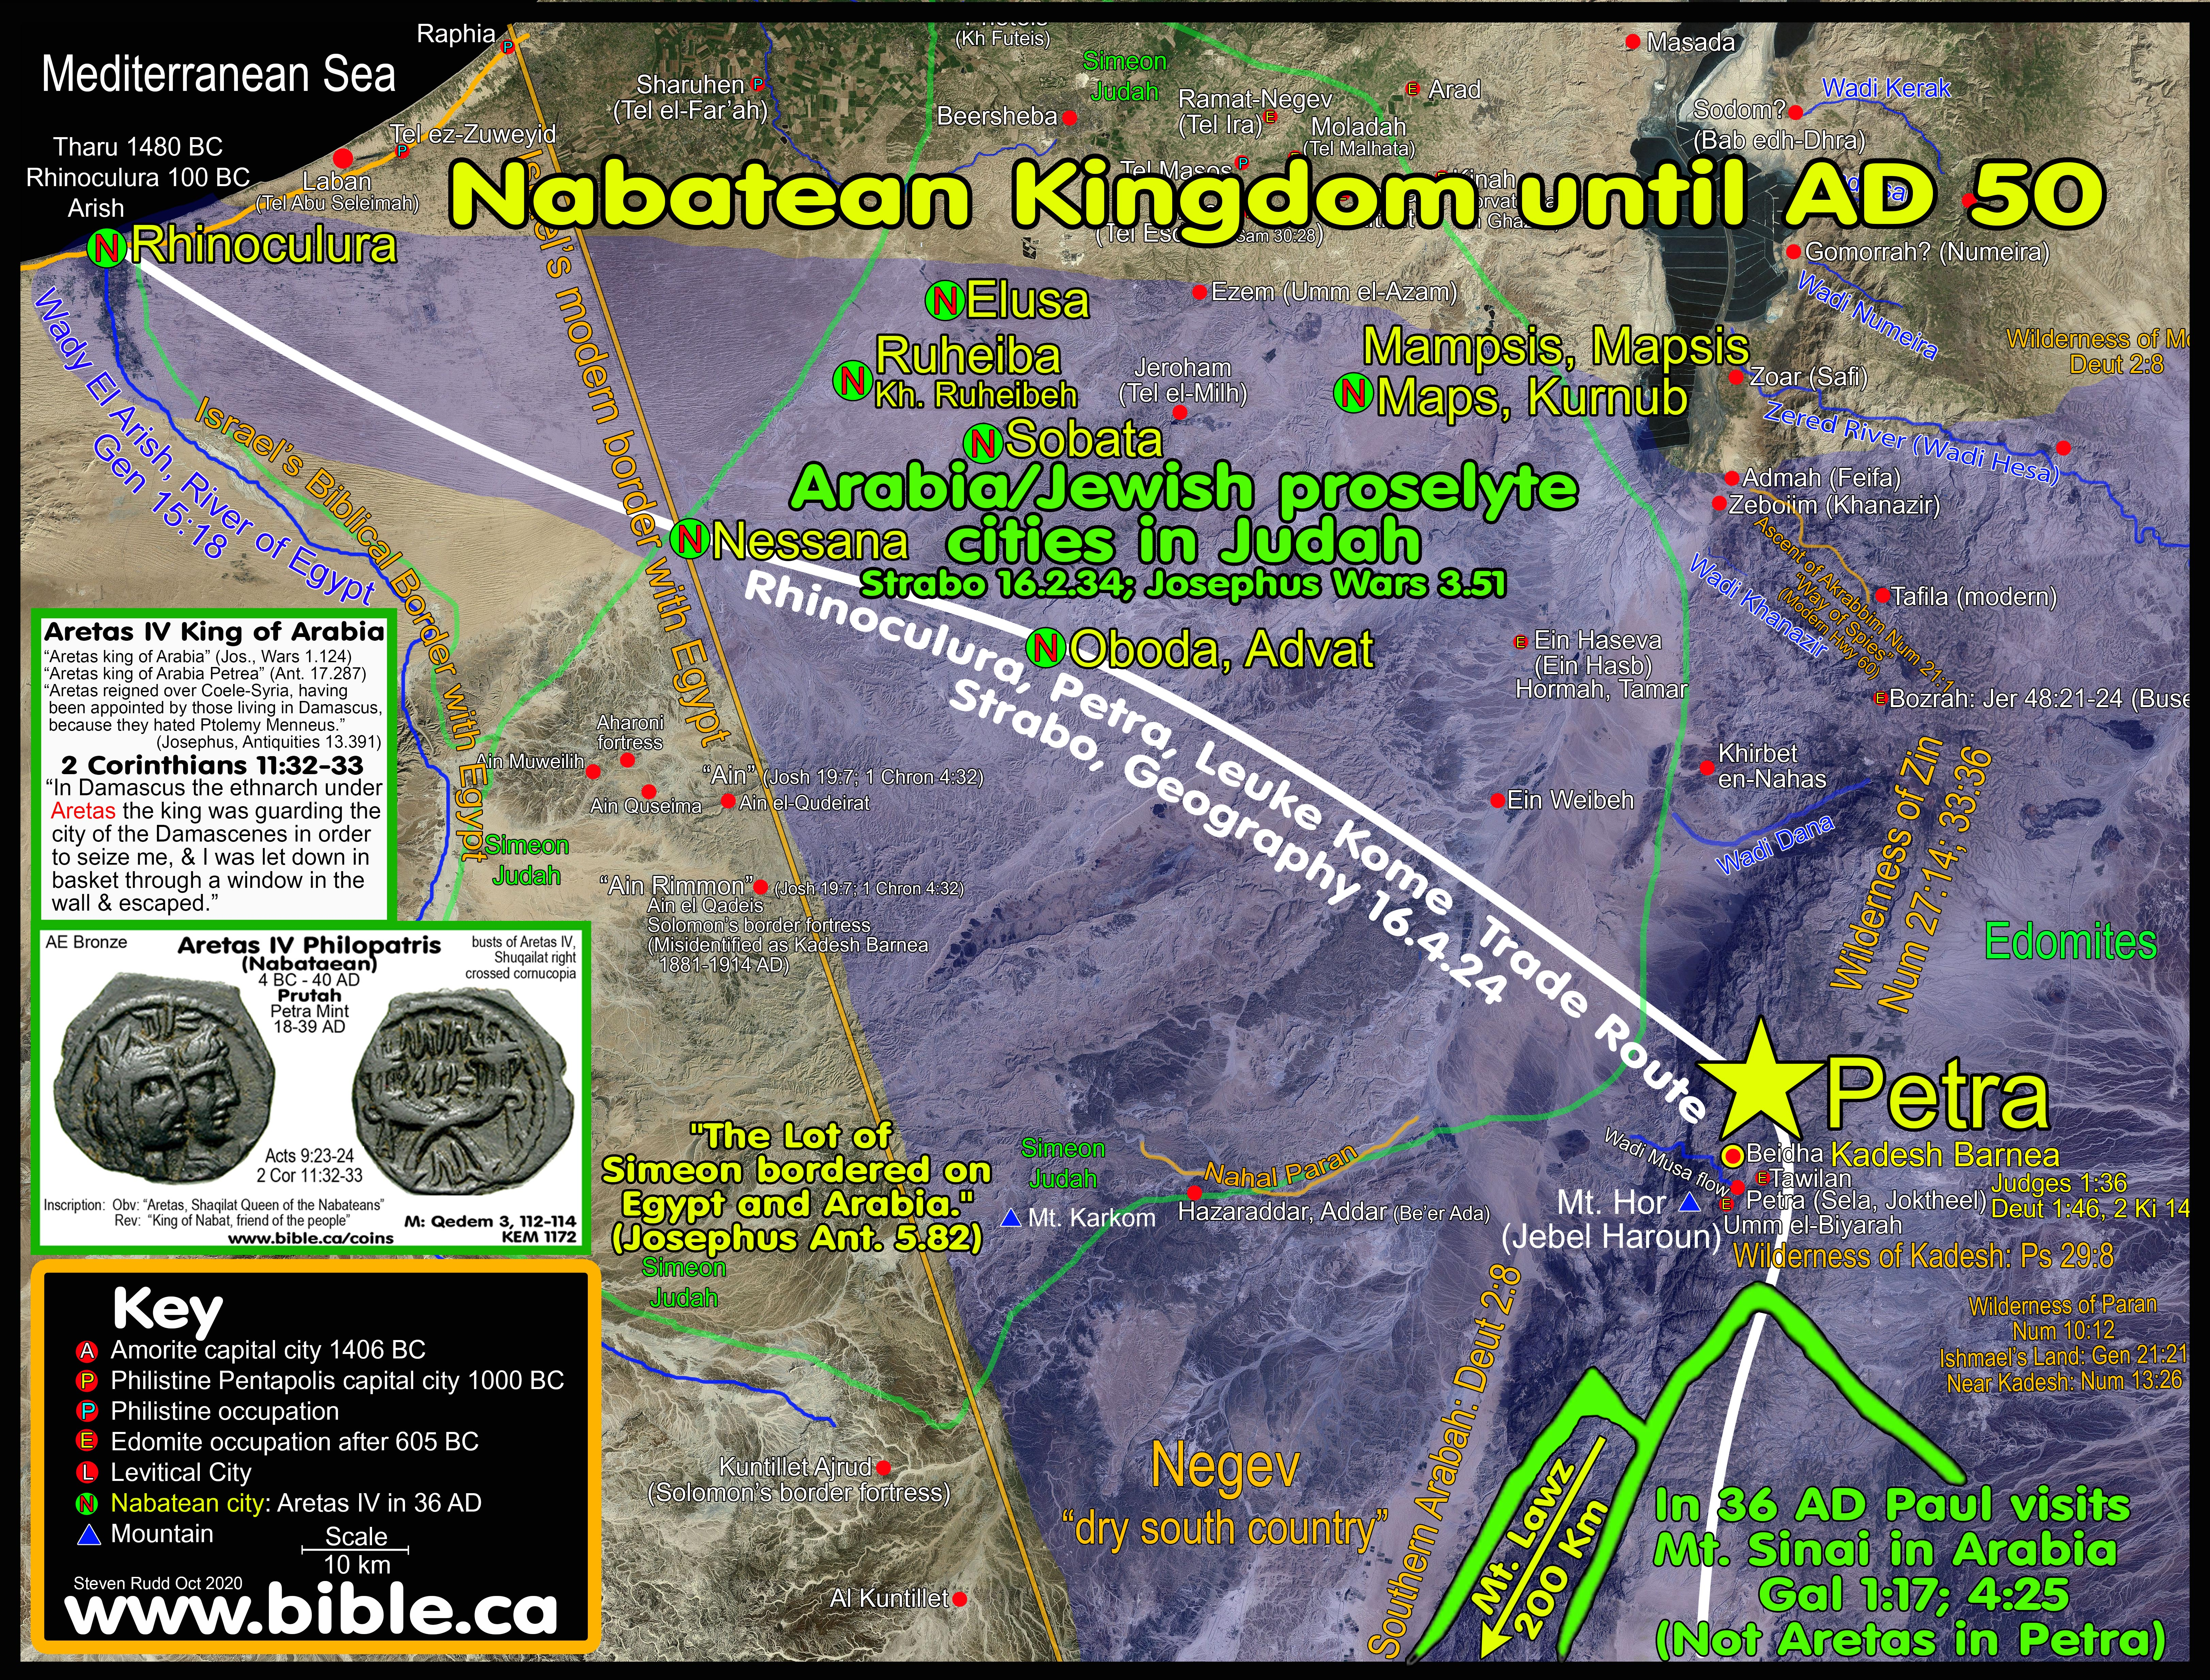 Mt Sinai in Arabia The Exodus Route A scriptural proof with